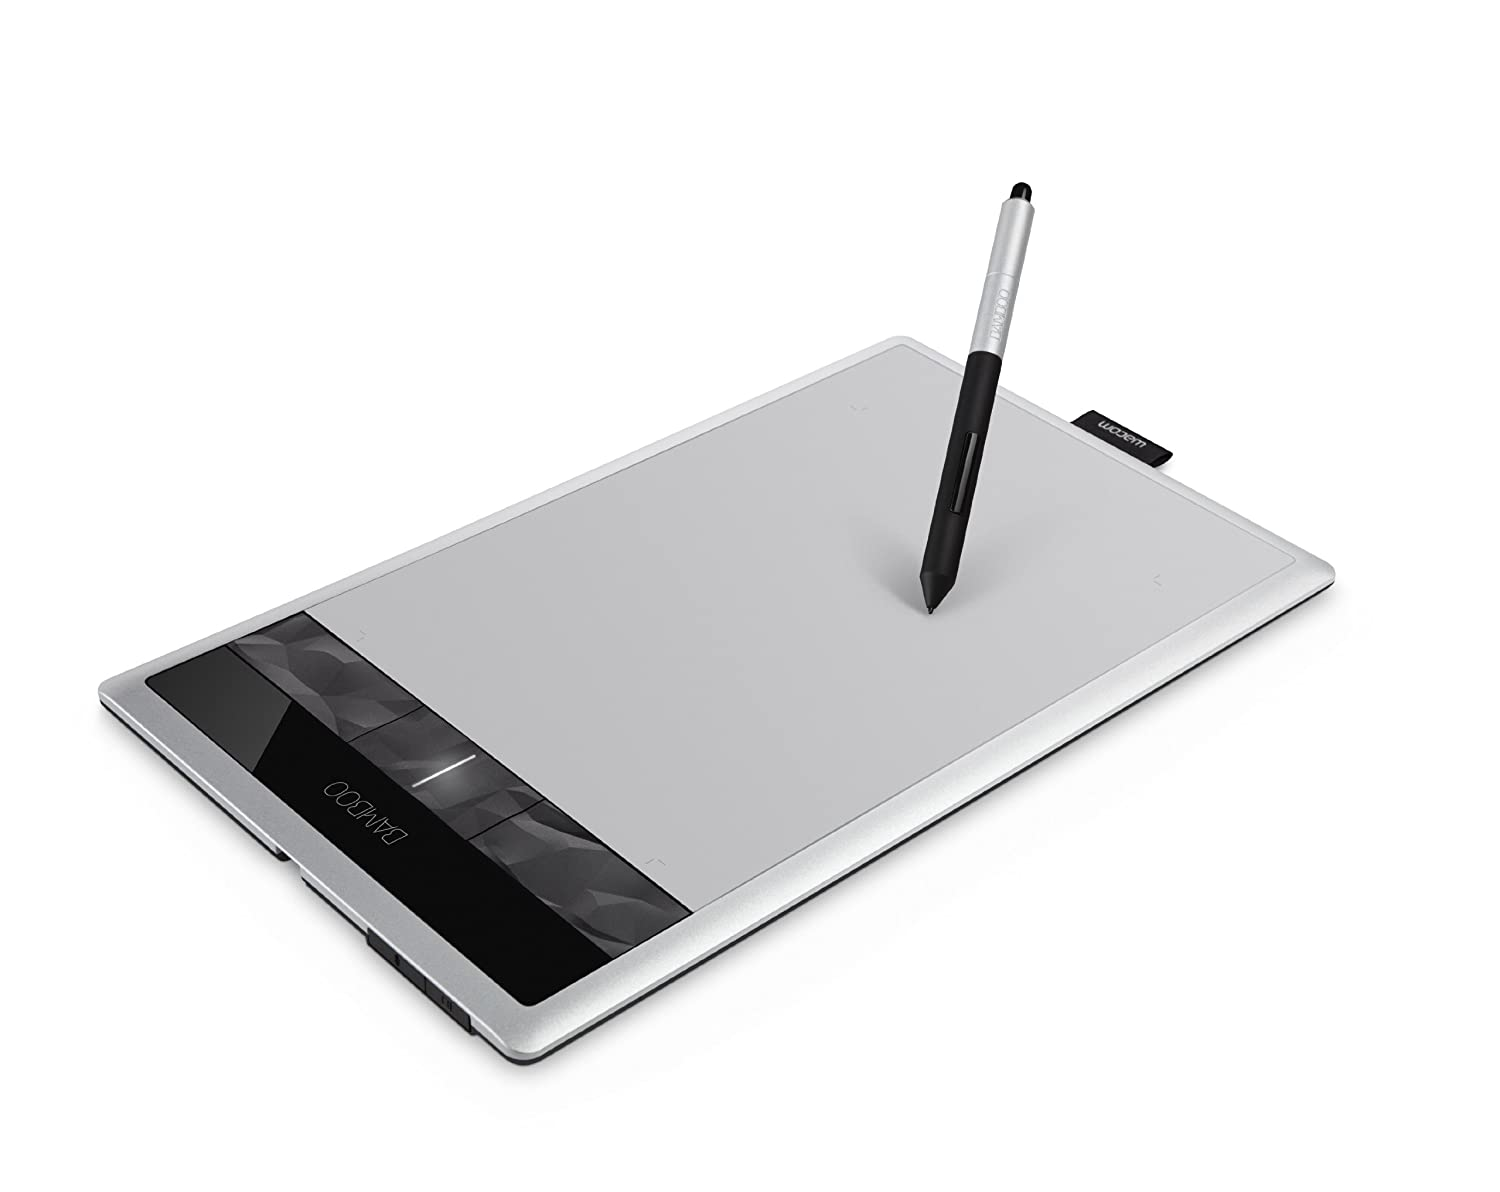 71ufng%2Bgy L. SL1500  Wacom Intuos vs Bamboo Graphic Pad   Part 2